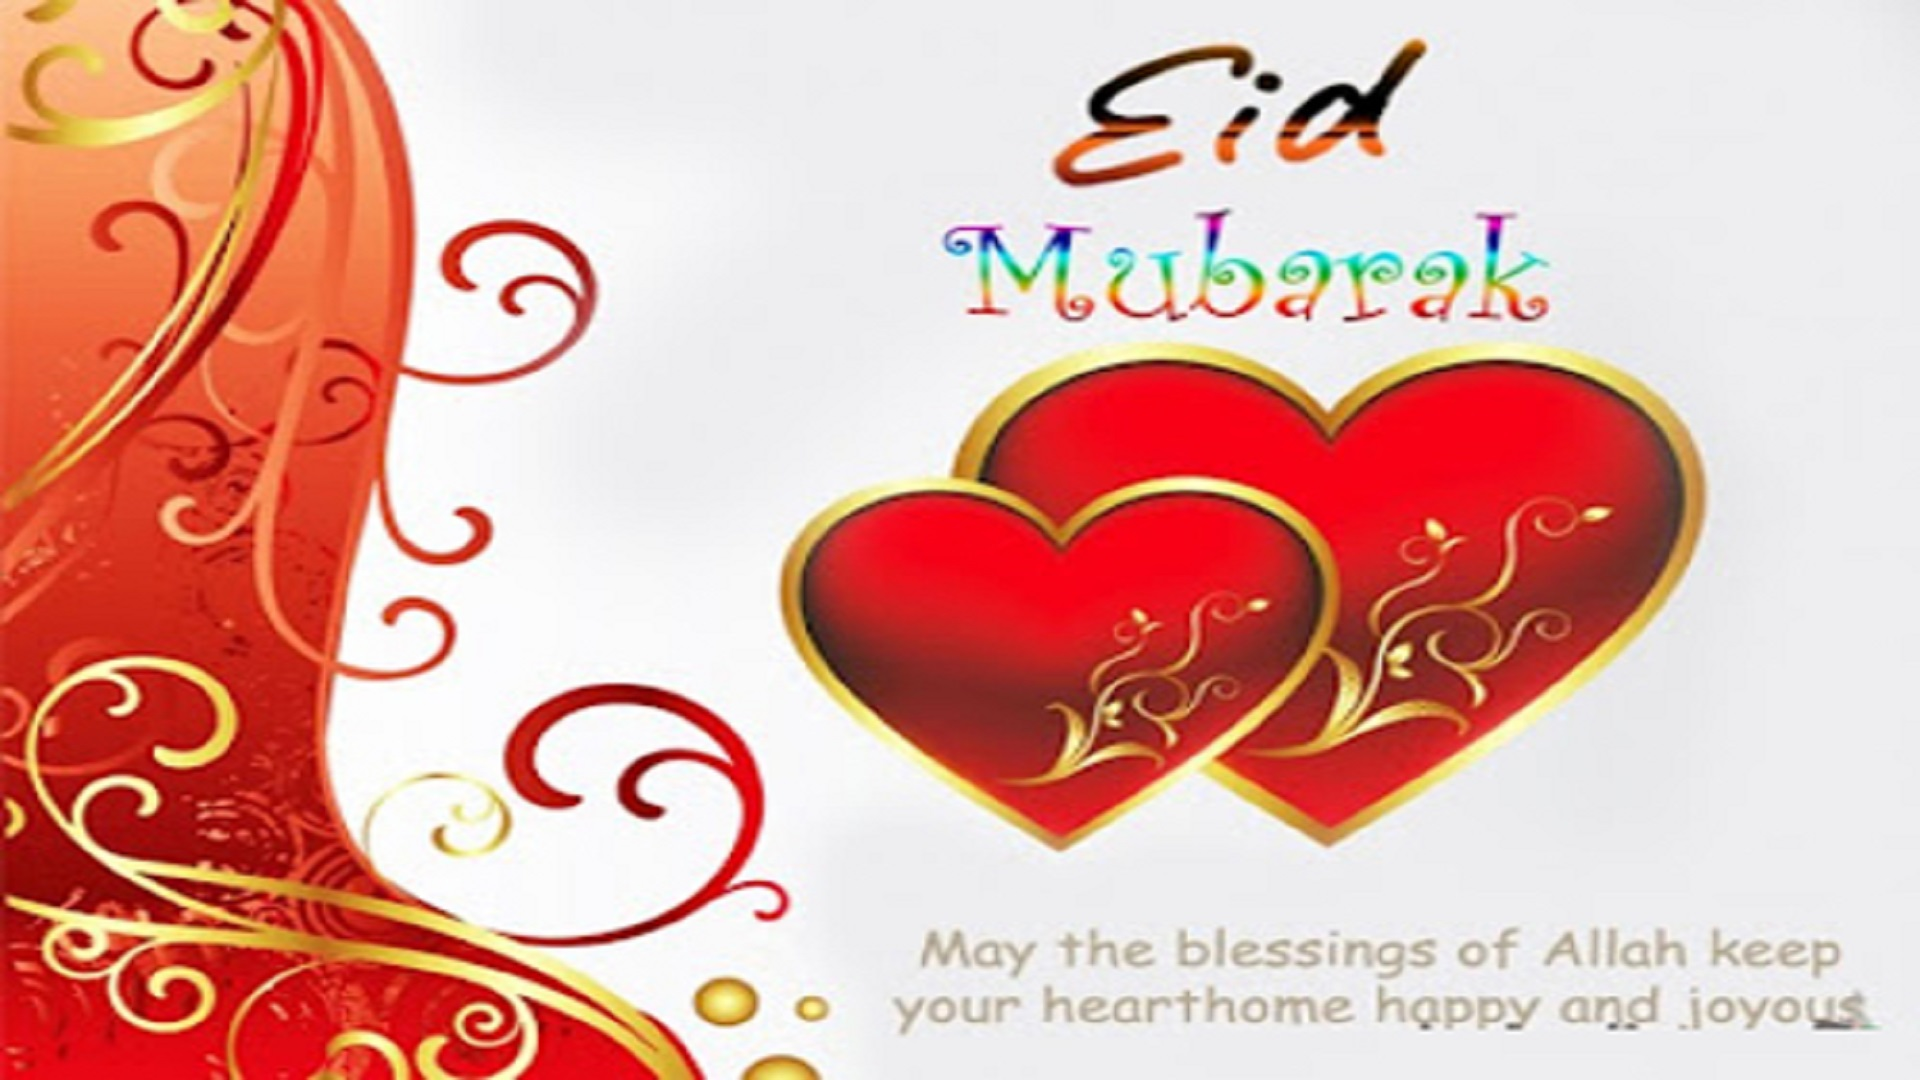 beautiful heart eid mubark hd free mobile desktop background pictures